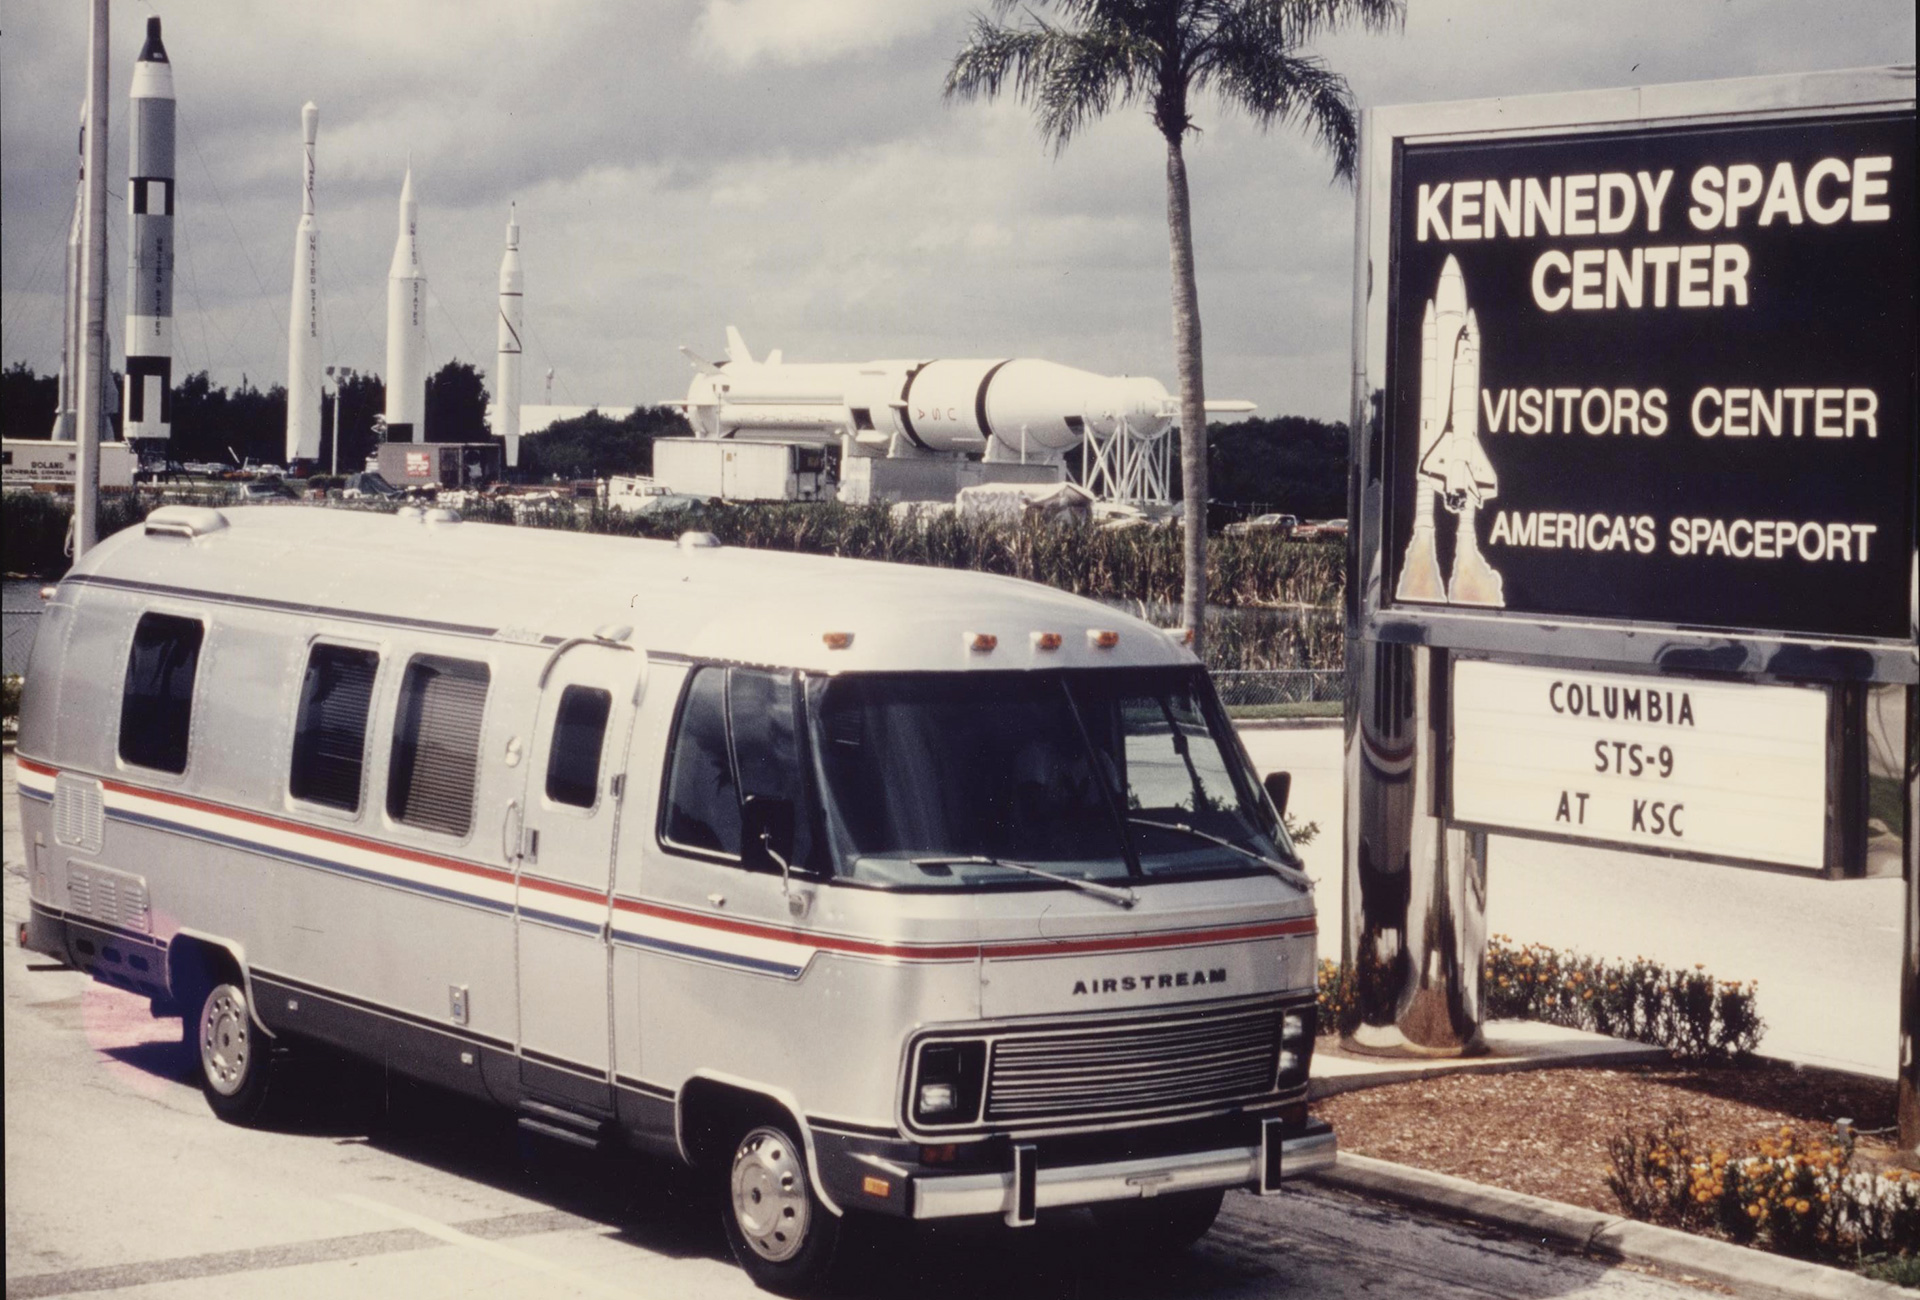 Airstream Astrovan RV sitting outside the Kennedy Space Center